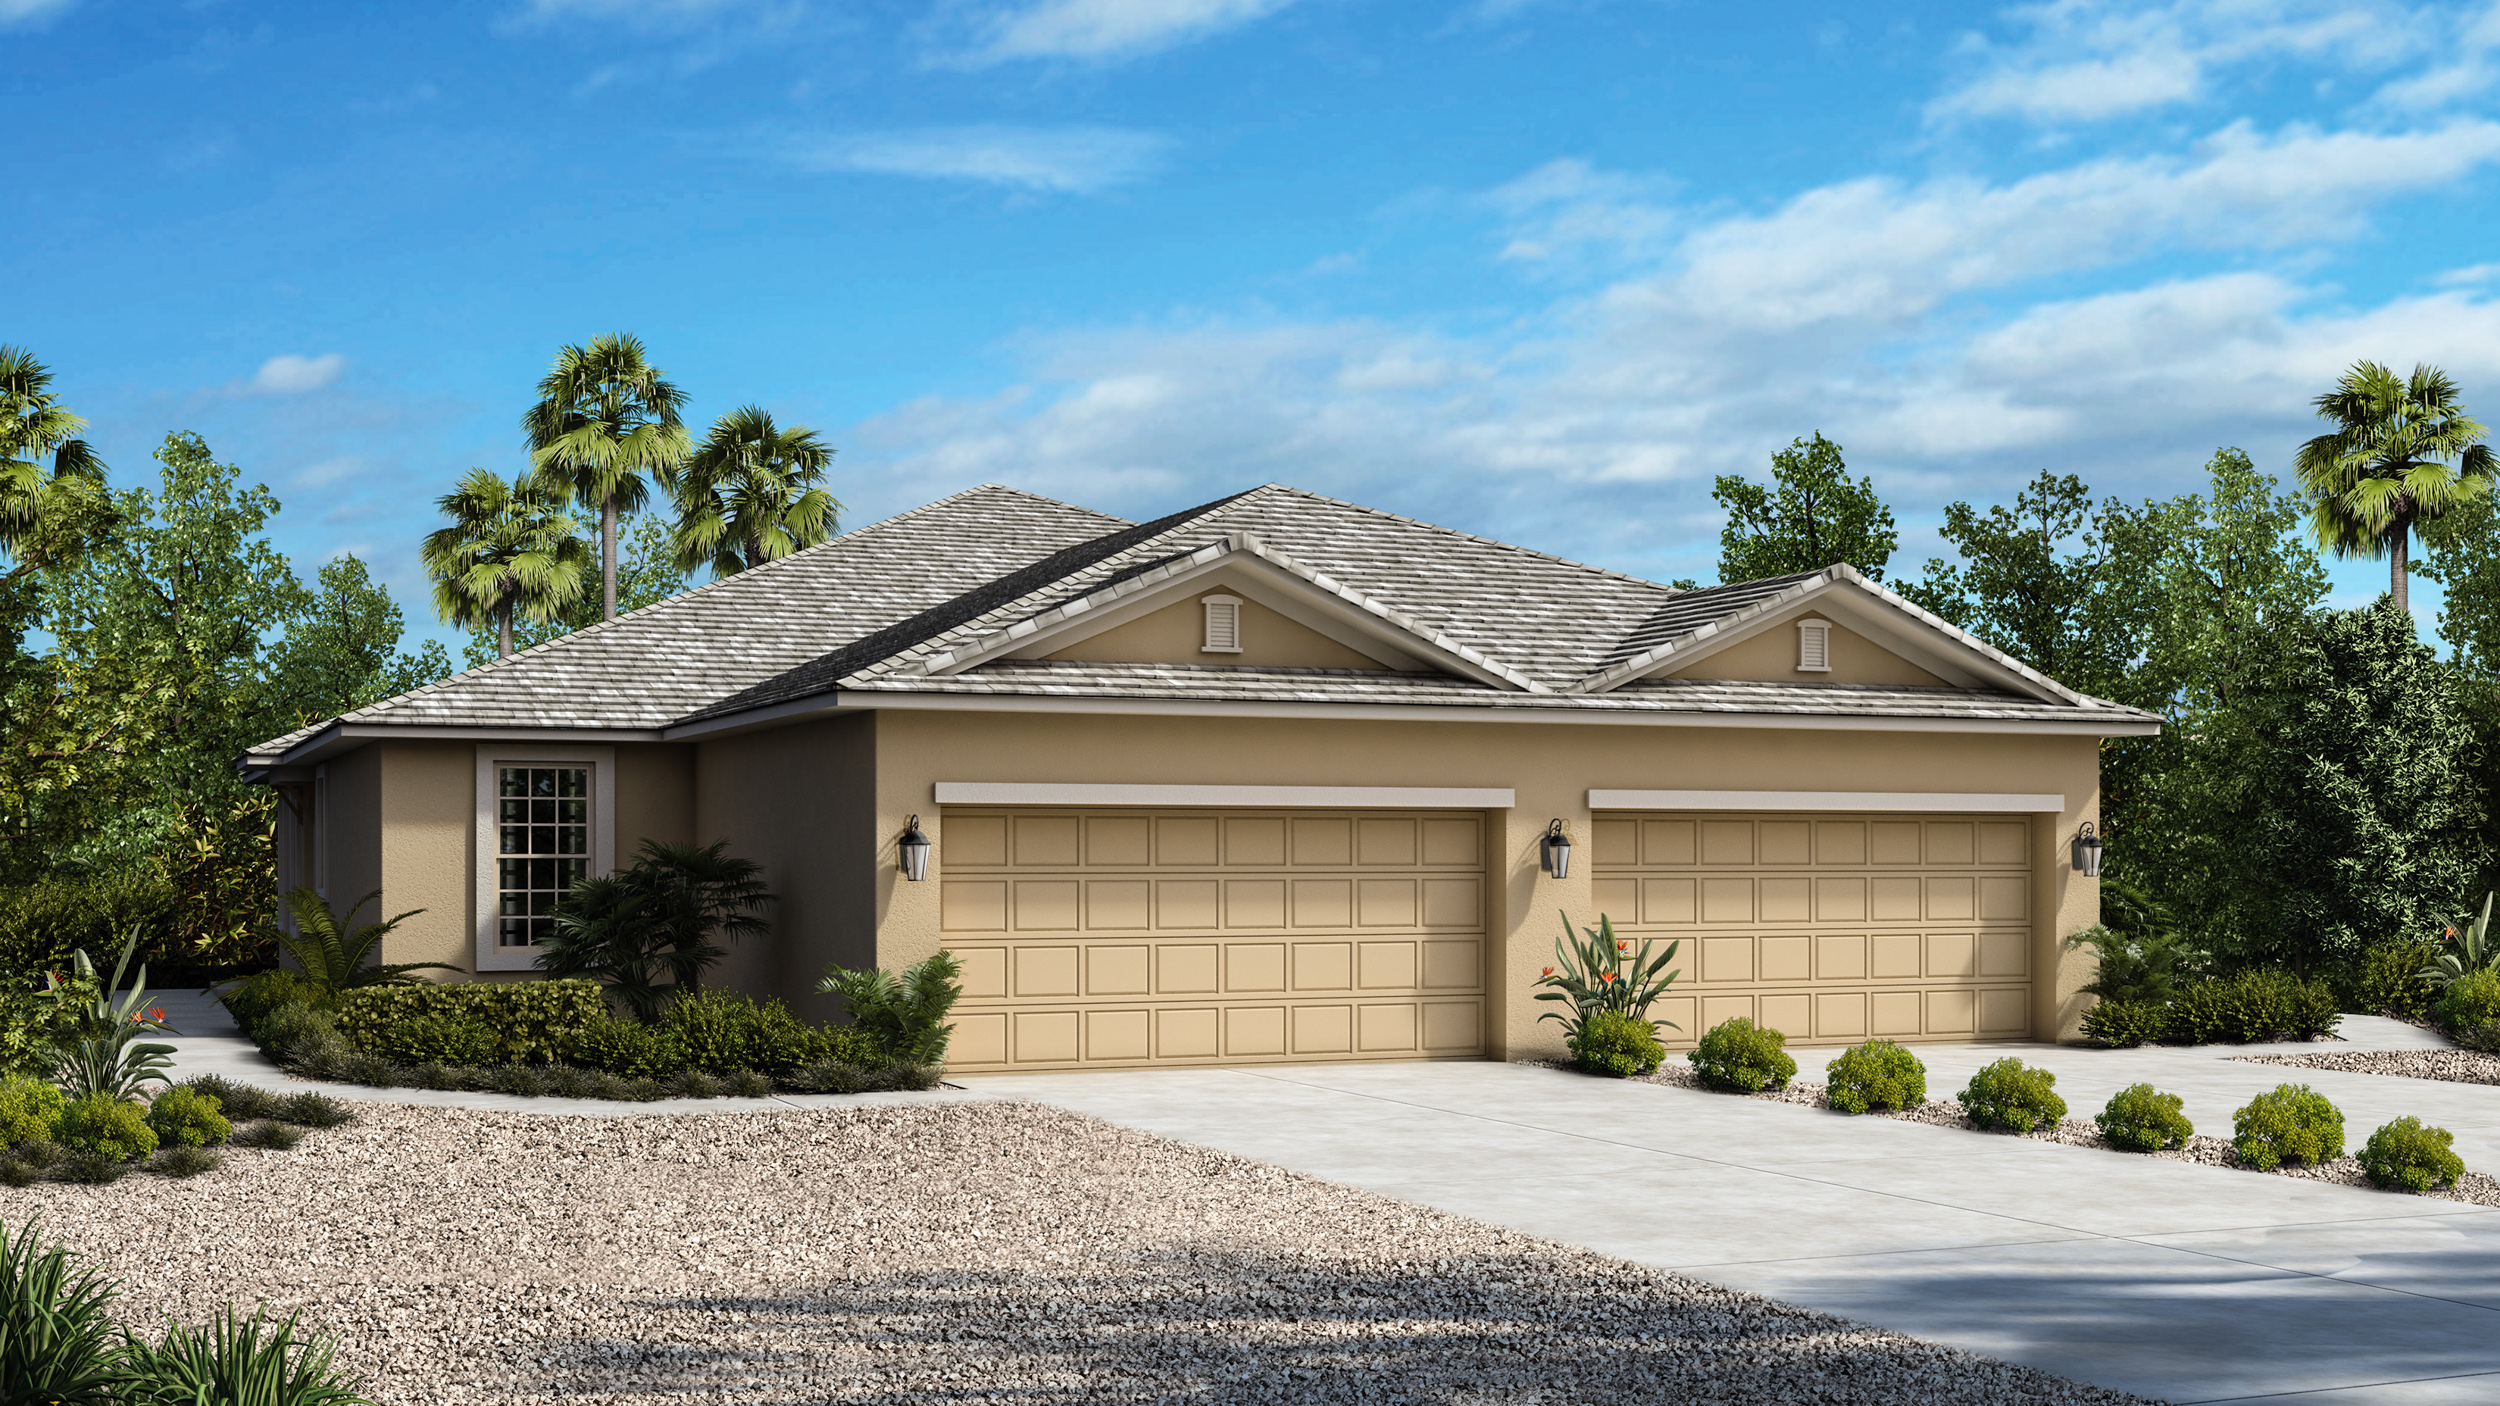 Brookfield residential debuts new townhome collection builder builder taylor morrison opens twin villa homes in florida malvernweather Image collections